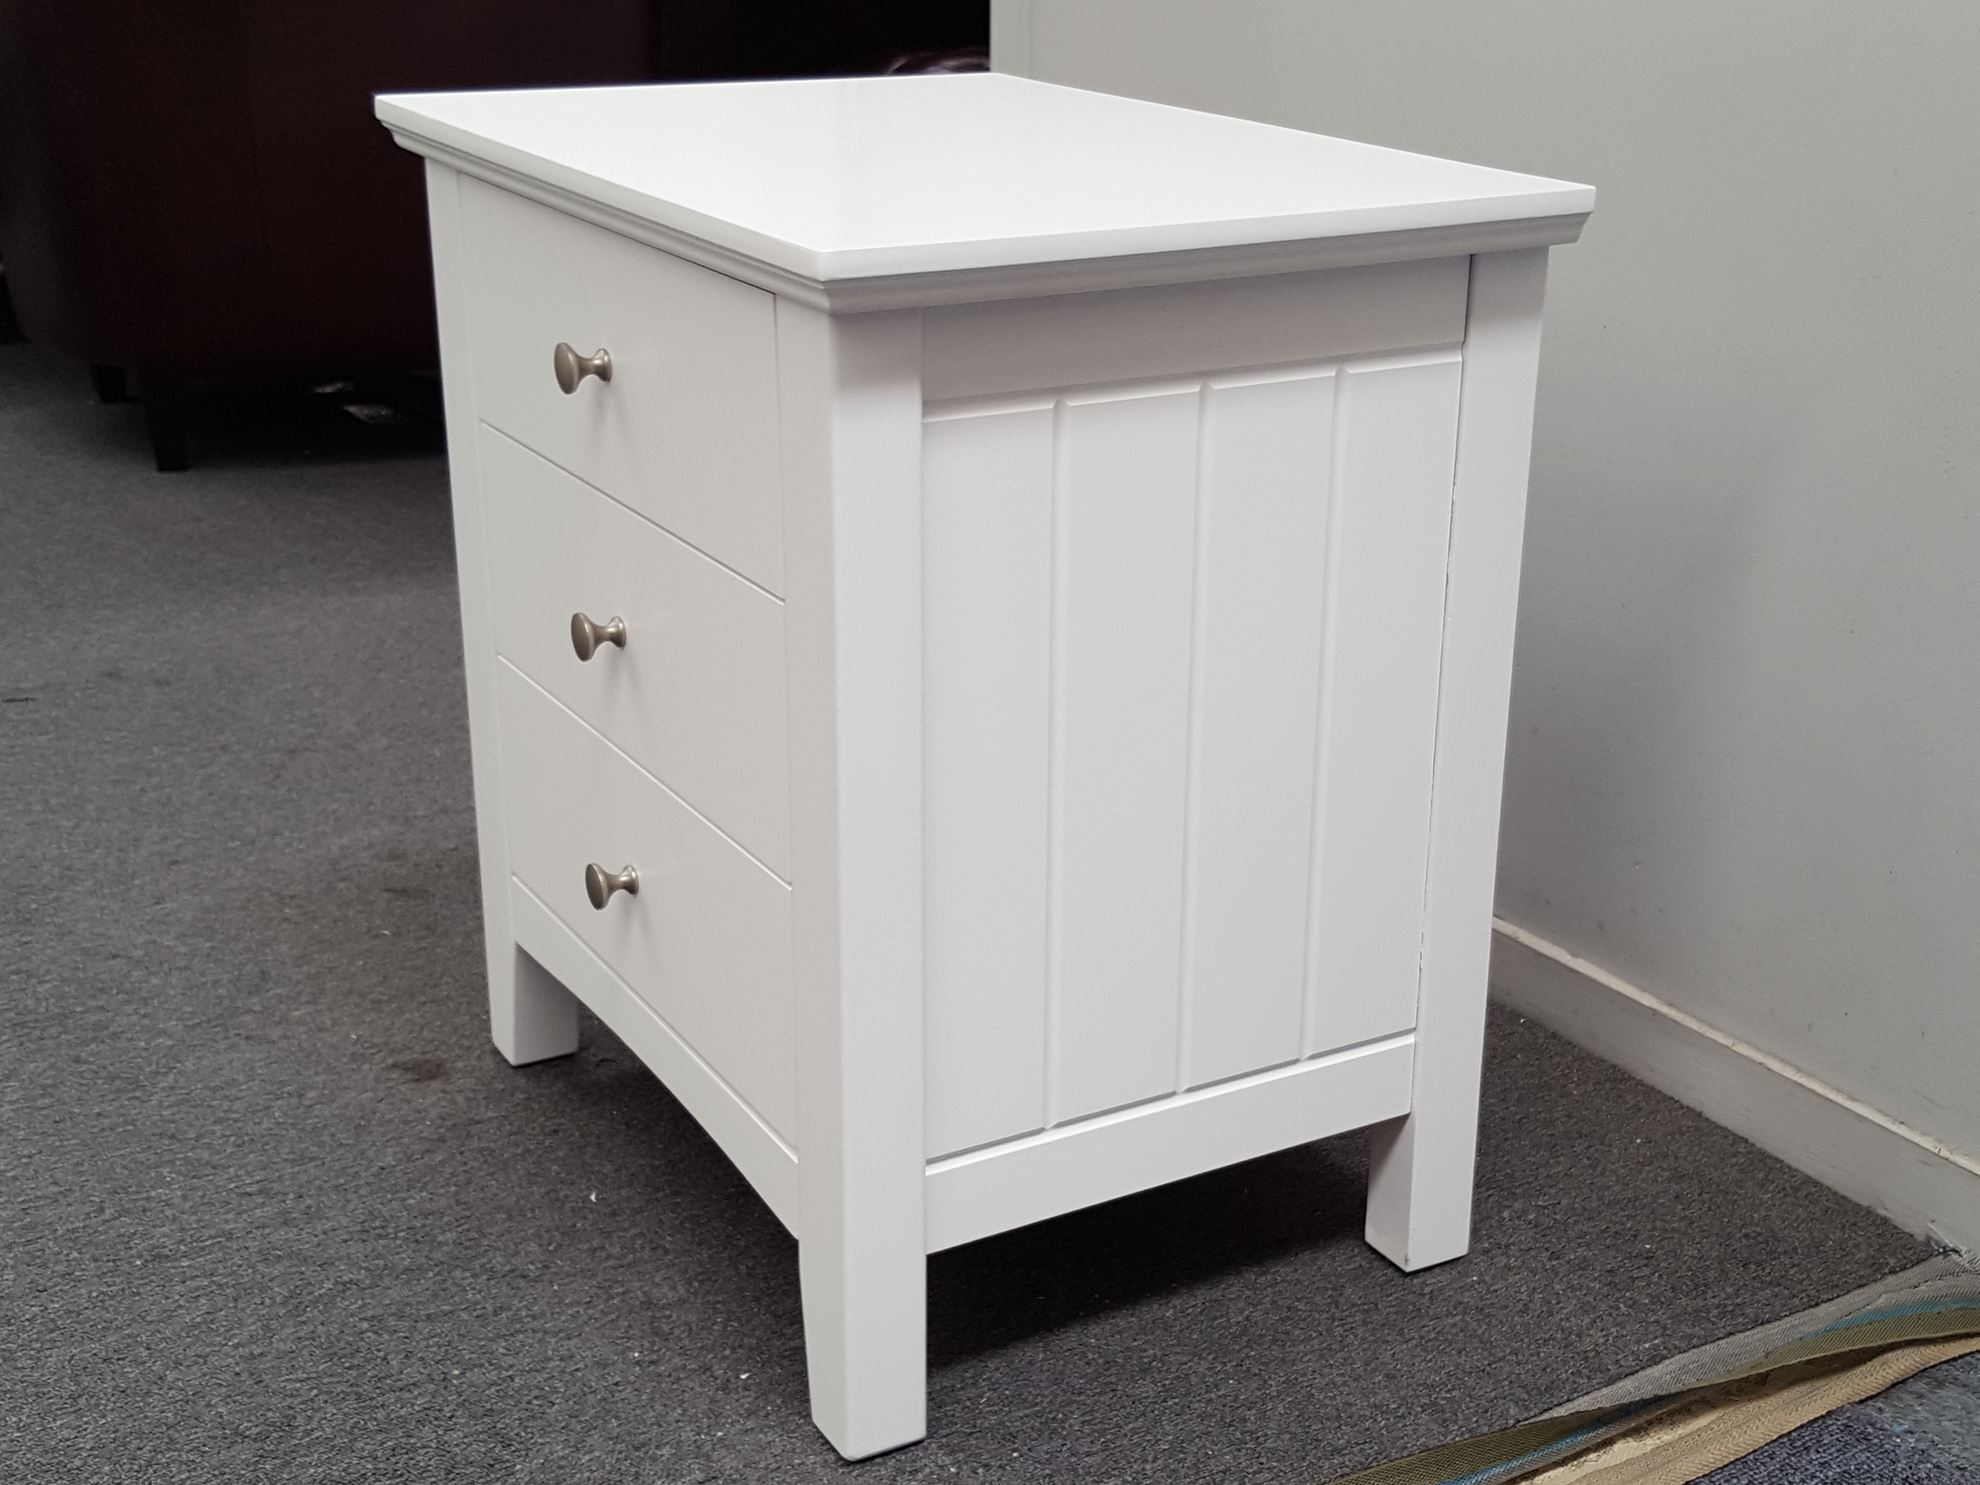 Furniture Place 2x White IVY BEDSIDE TABLE : 00002812x ivy 3x drawers bedside tables white from www.furnitureplace.co.nz size 1980 x 1485 jpeg 263kB